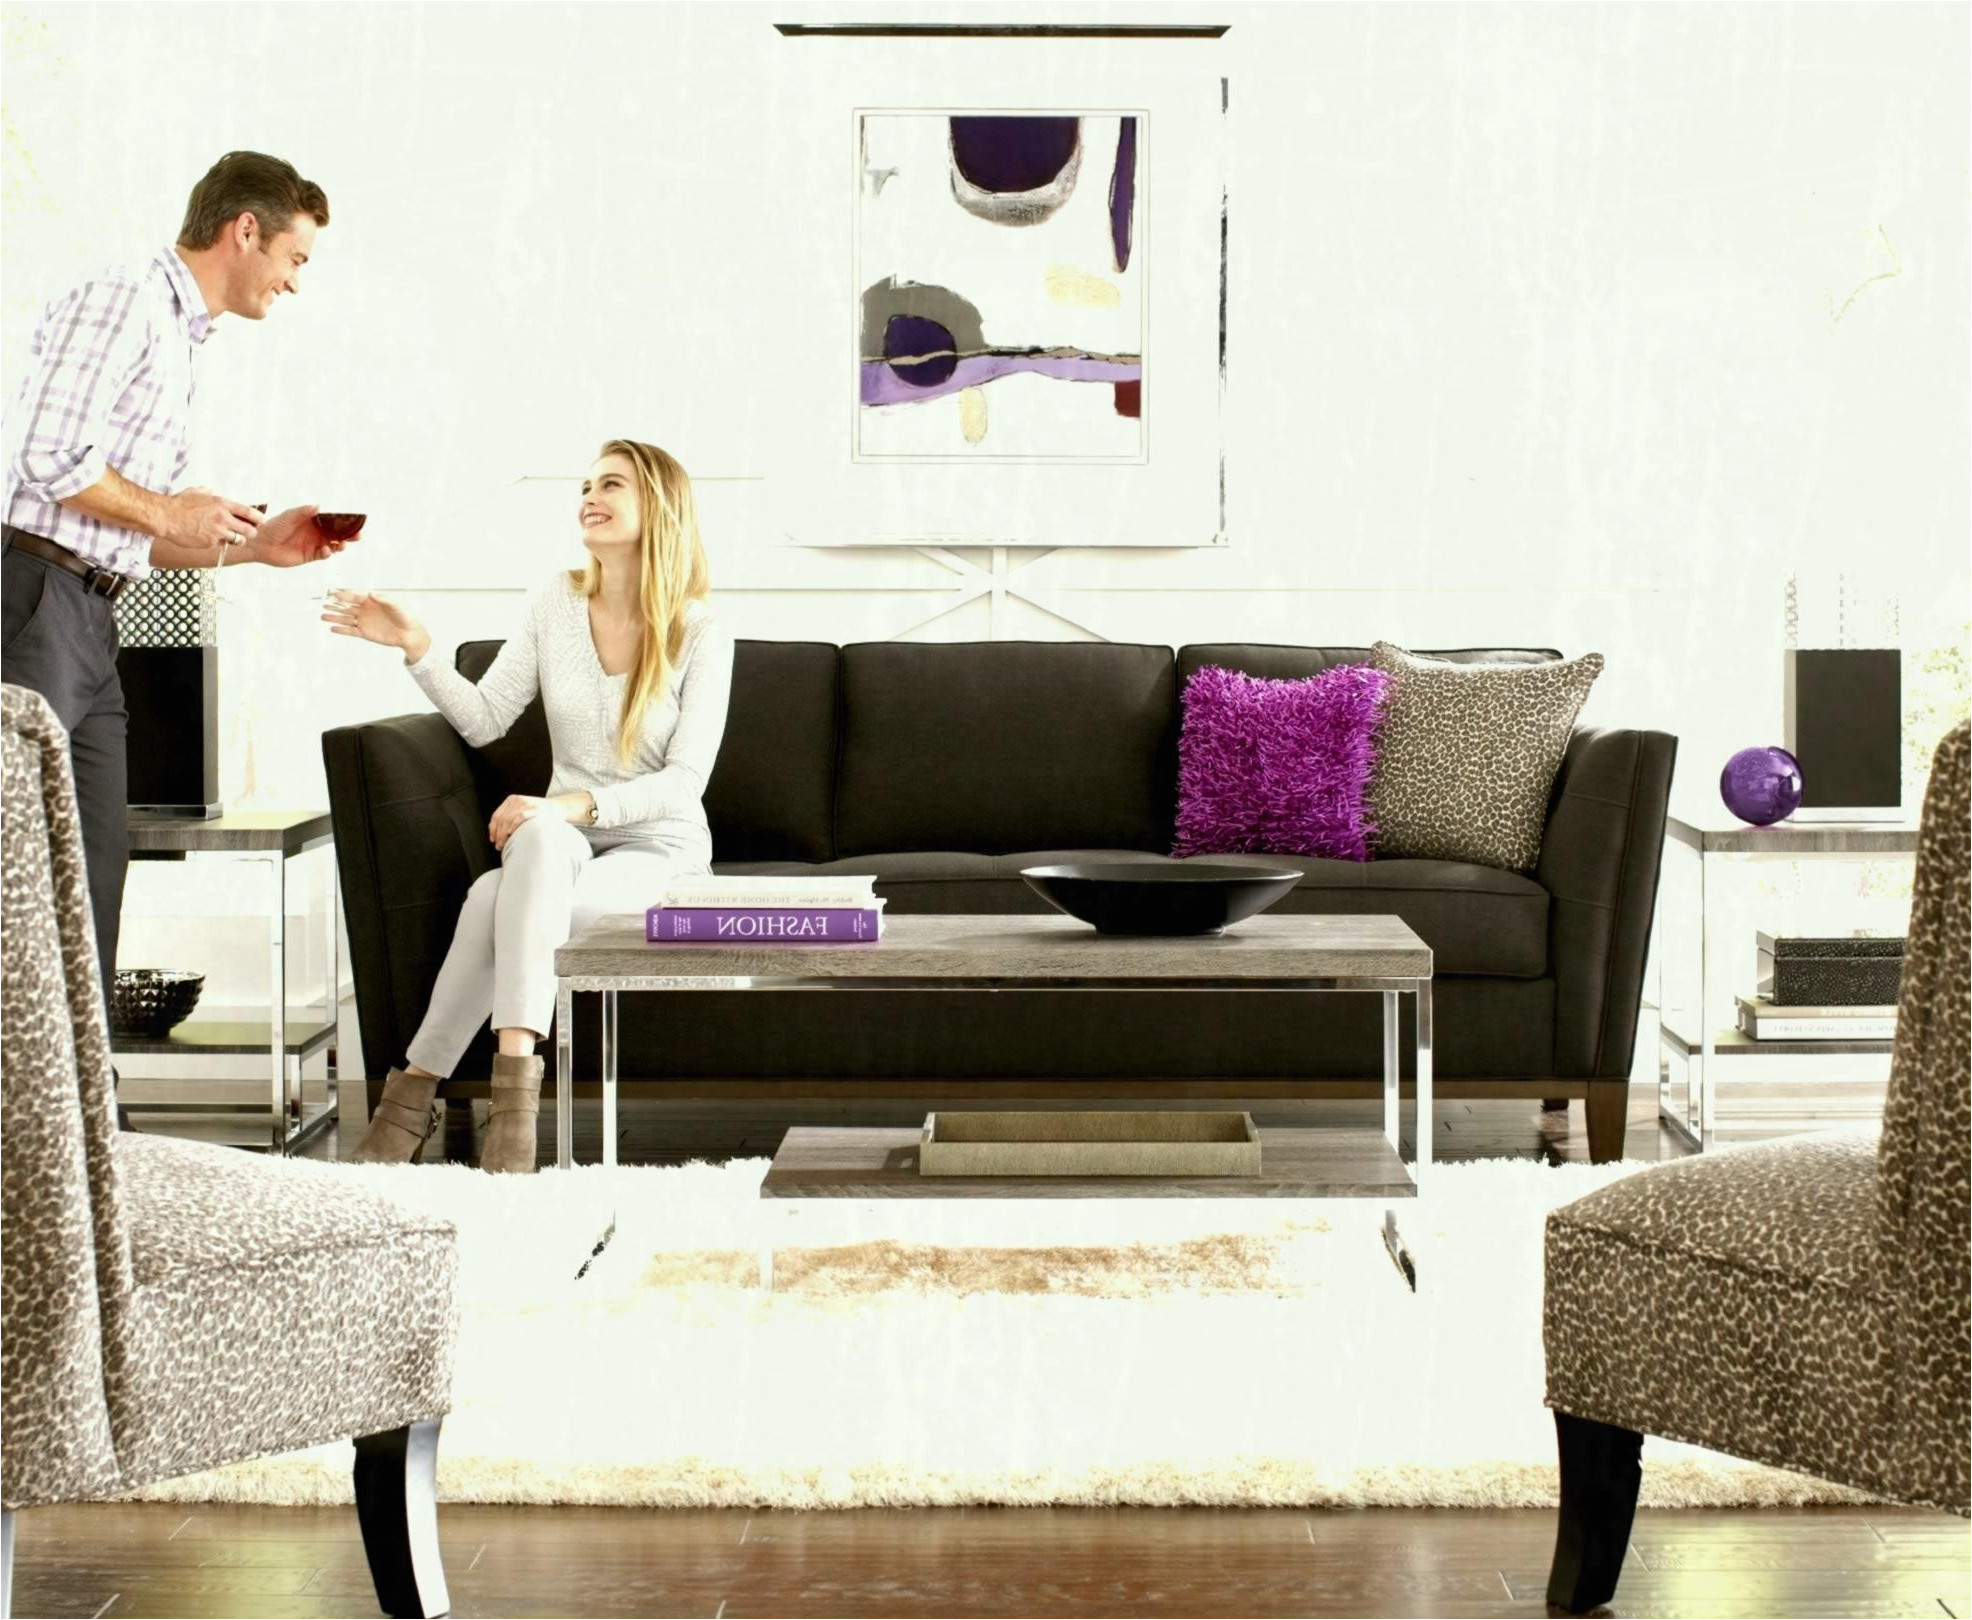 homemakers des moines iowa furniture outlet clearance ames stores in most up to date des moines